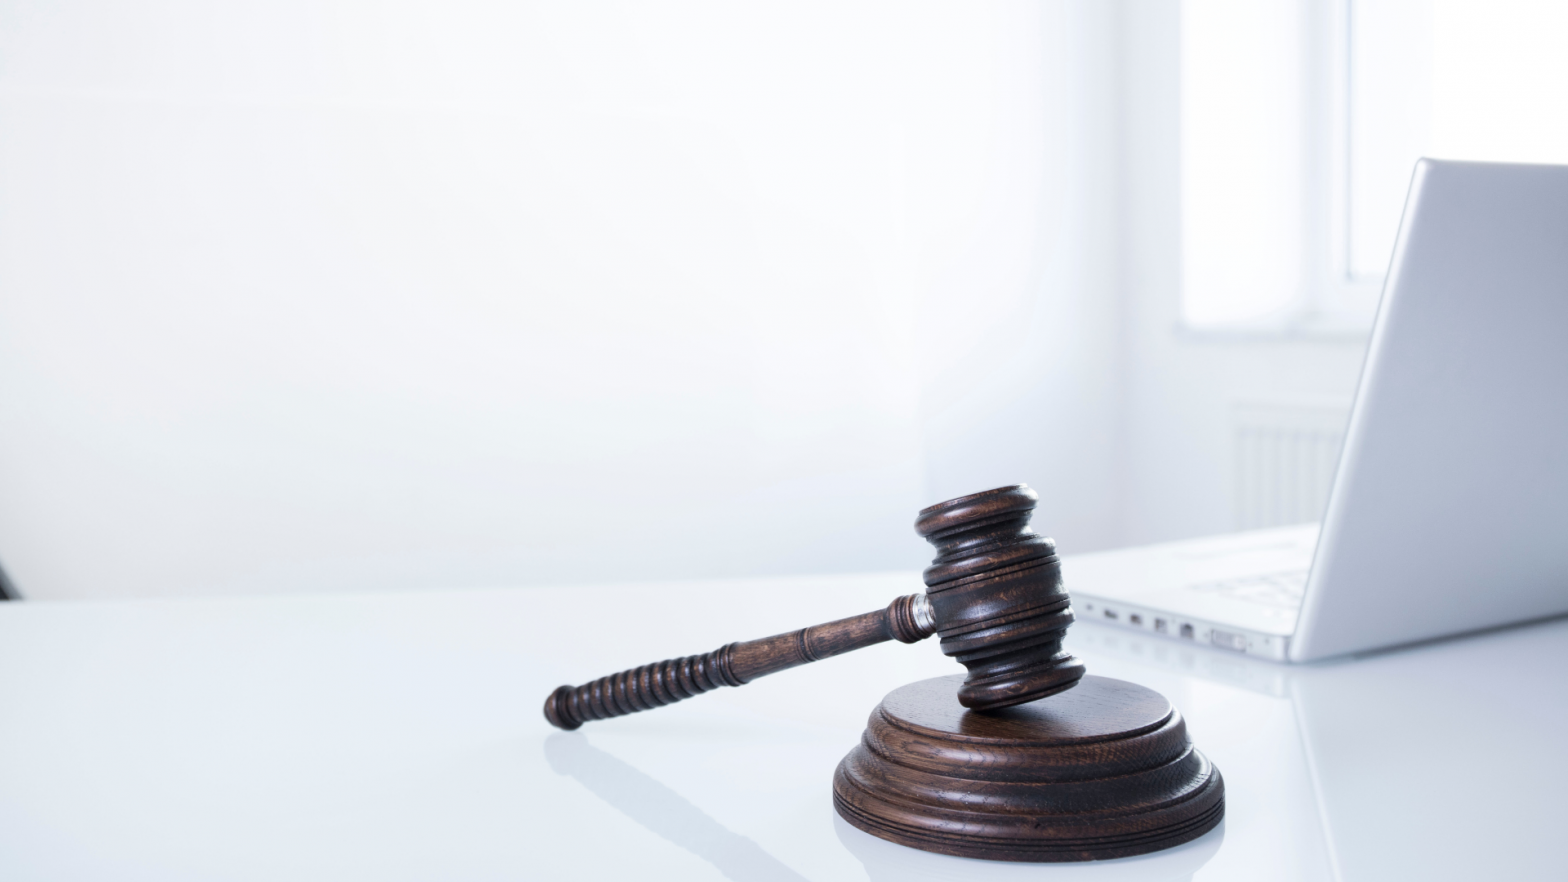 Judge's gavel next to a laptop